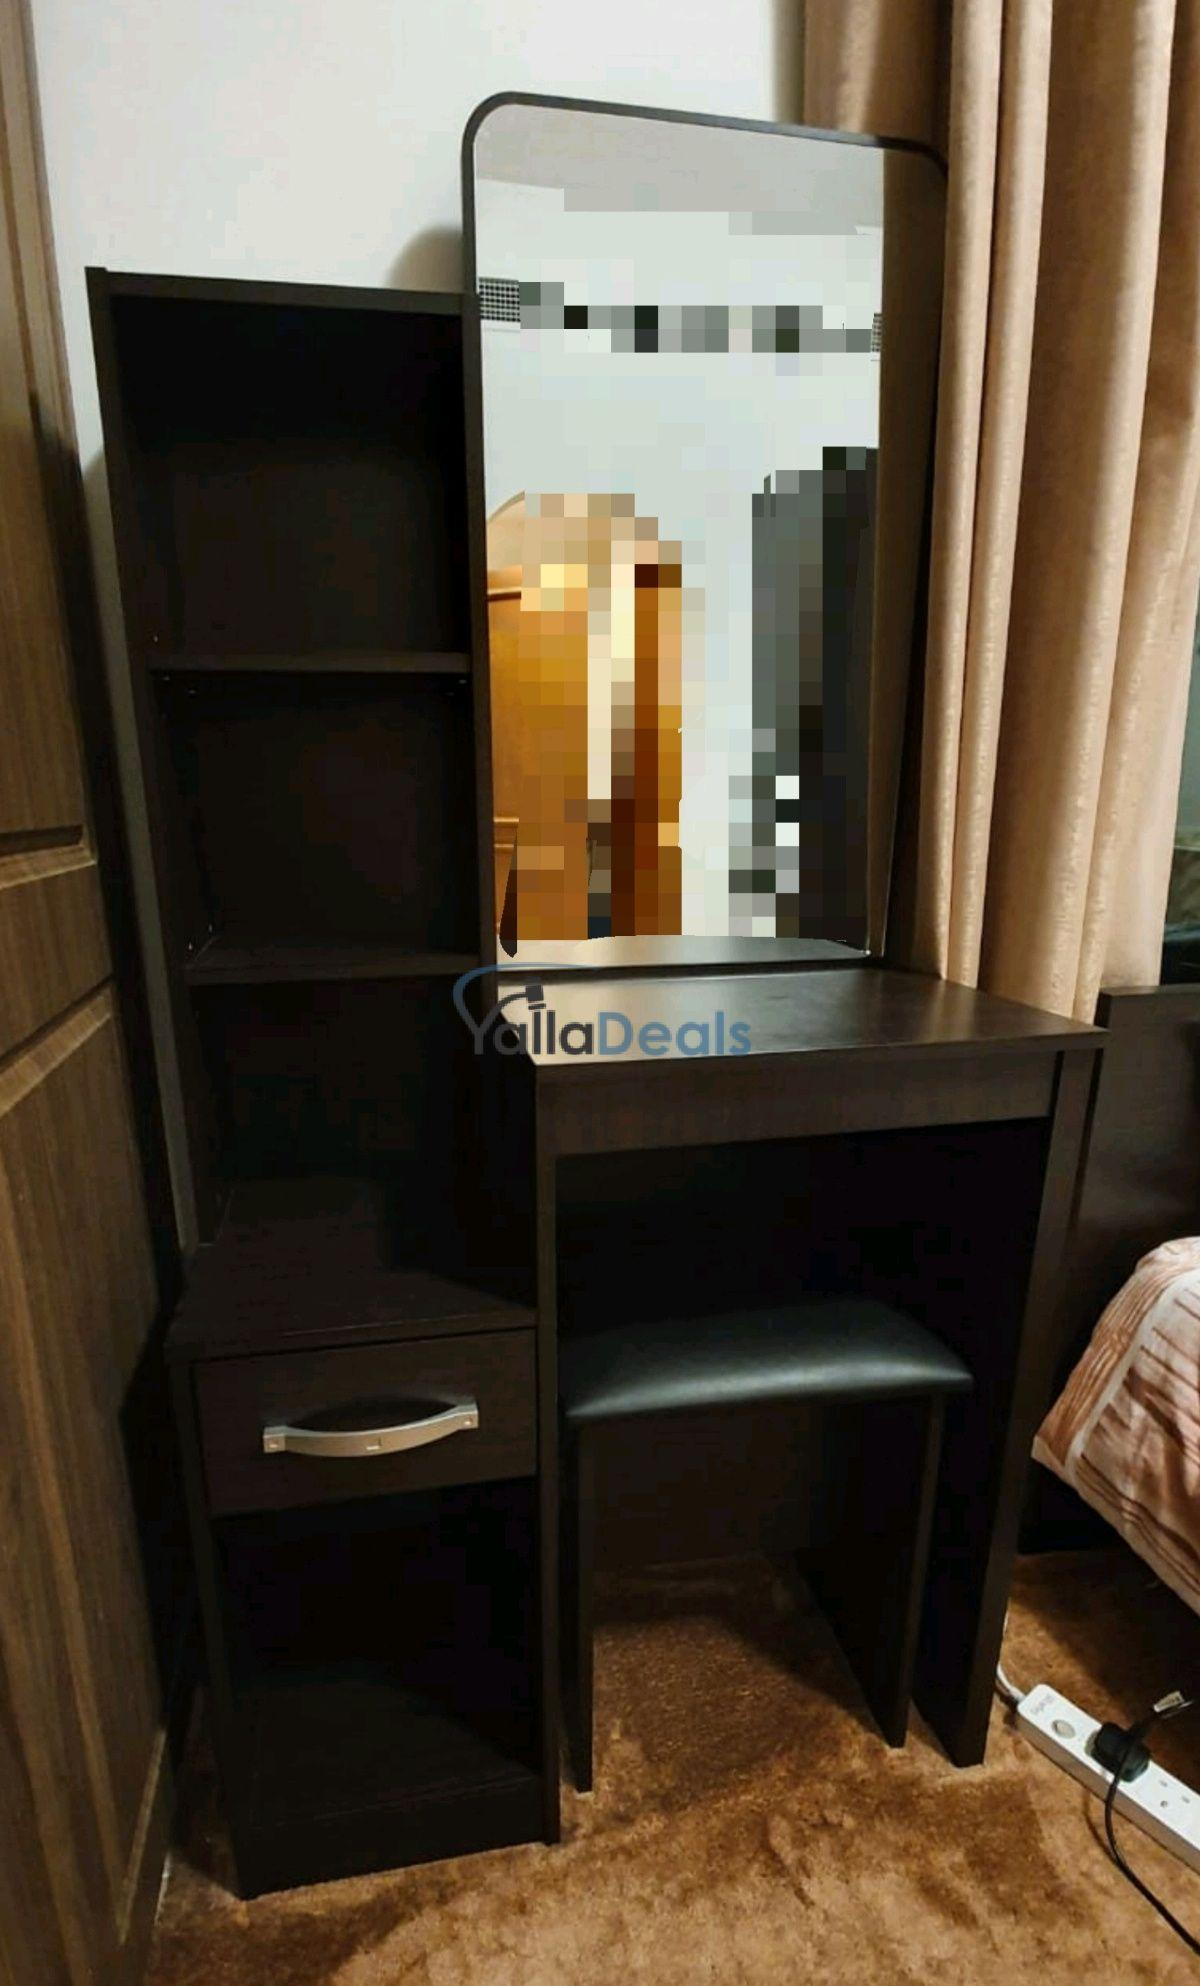 Bedrooms in Mirdif, Dubai